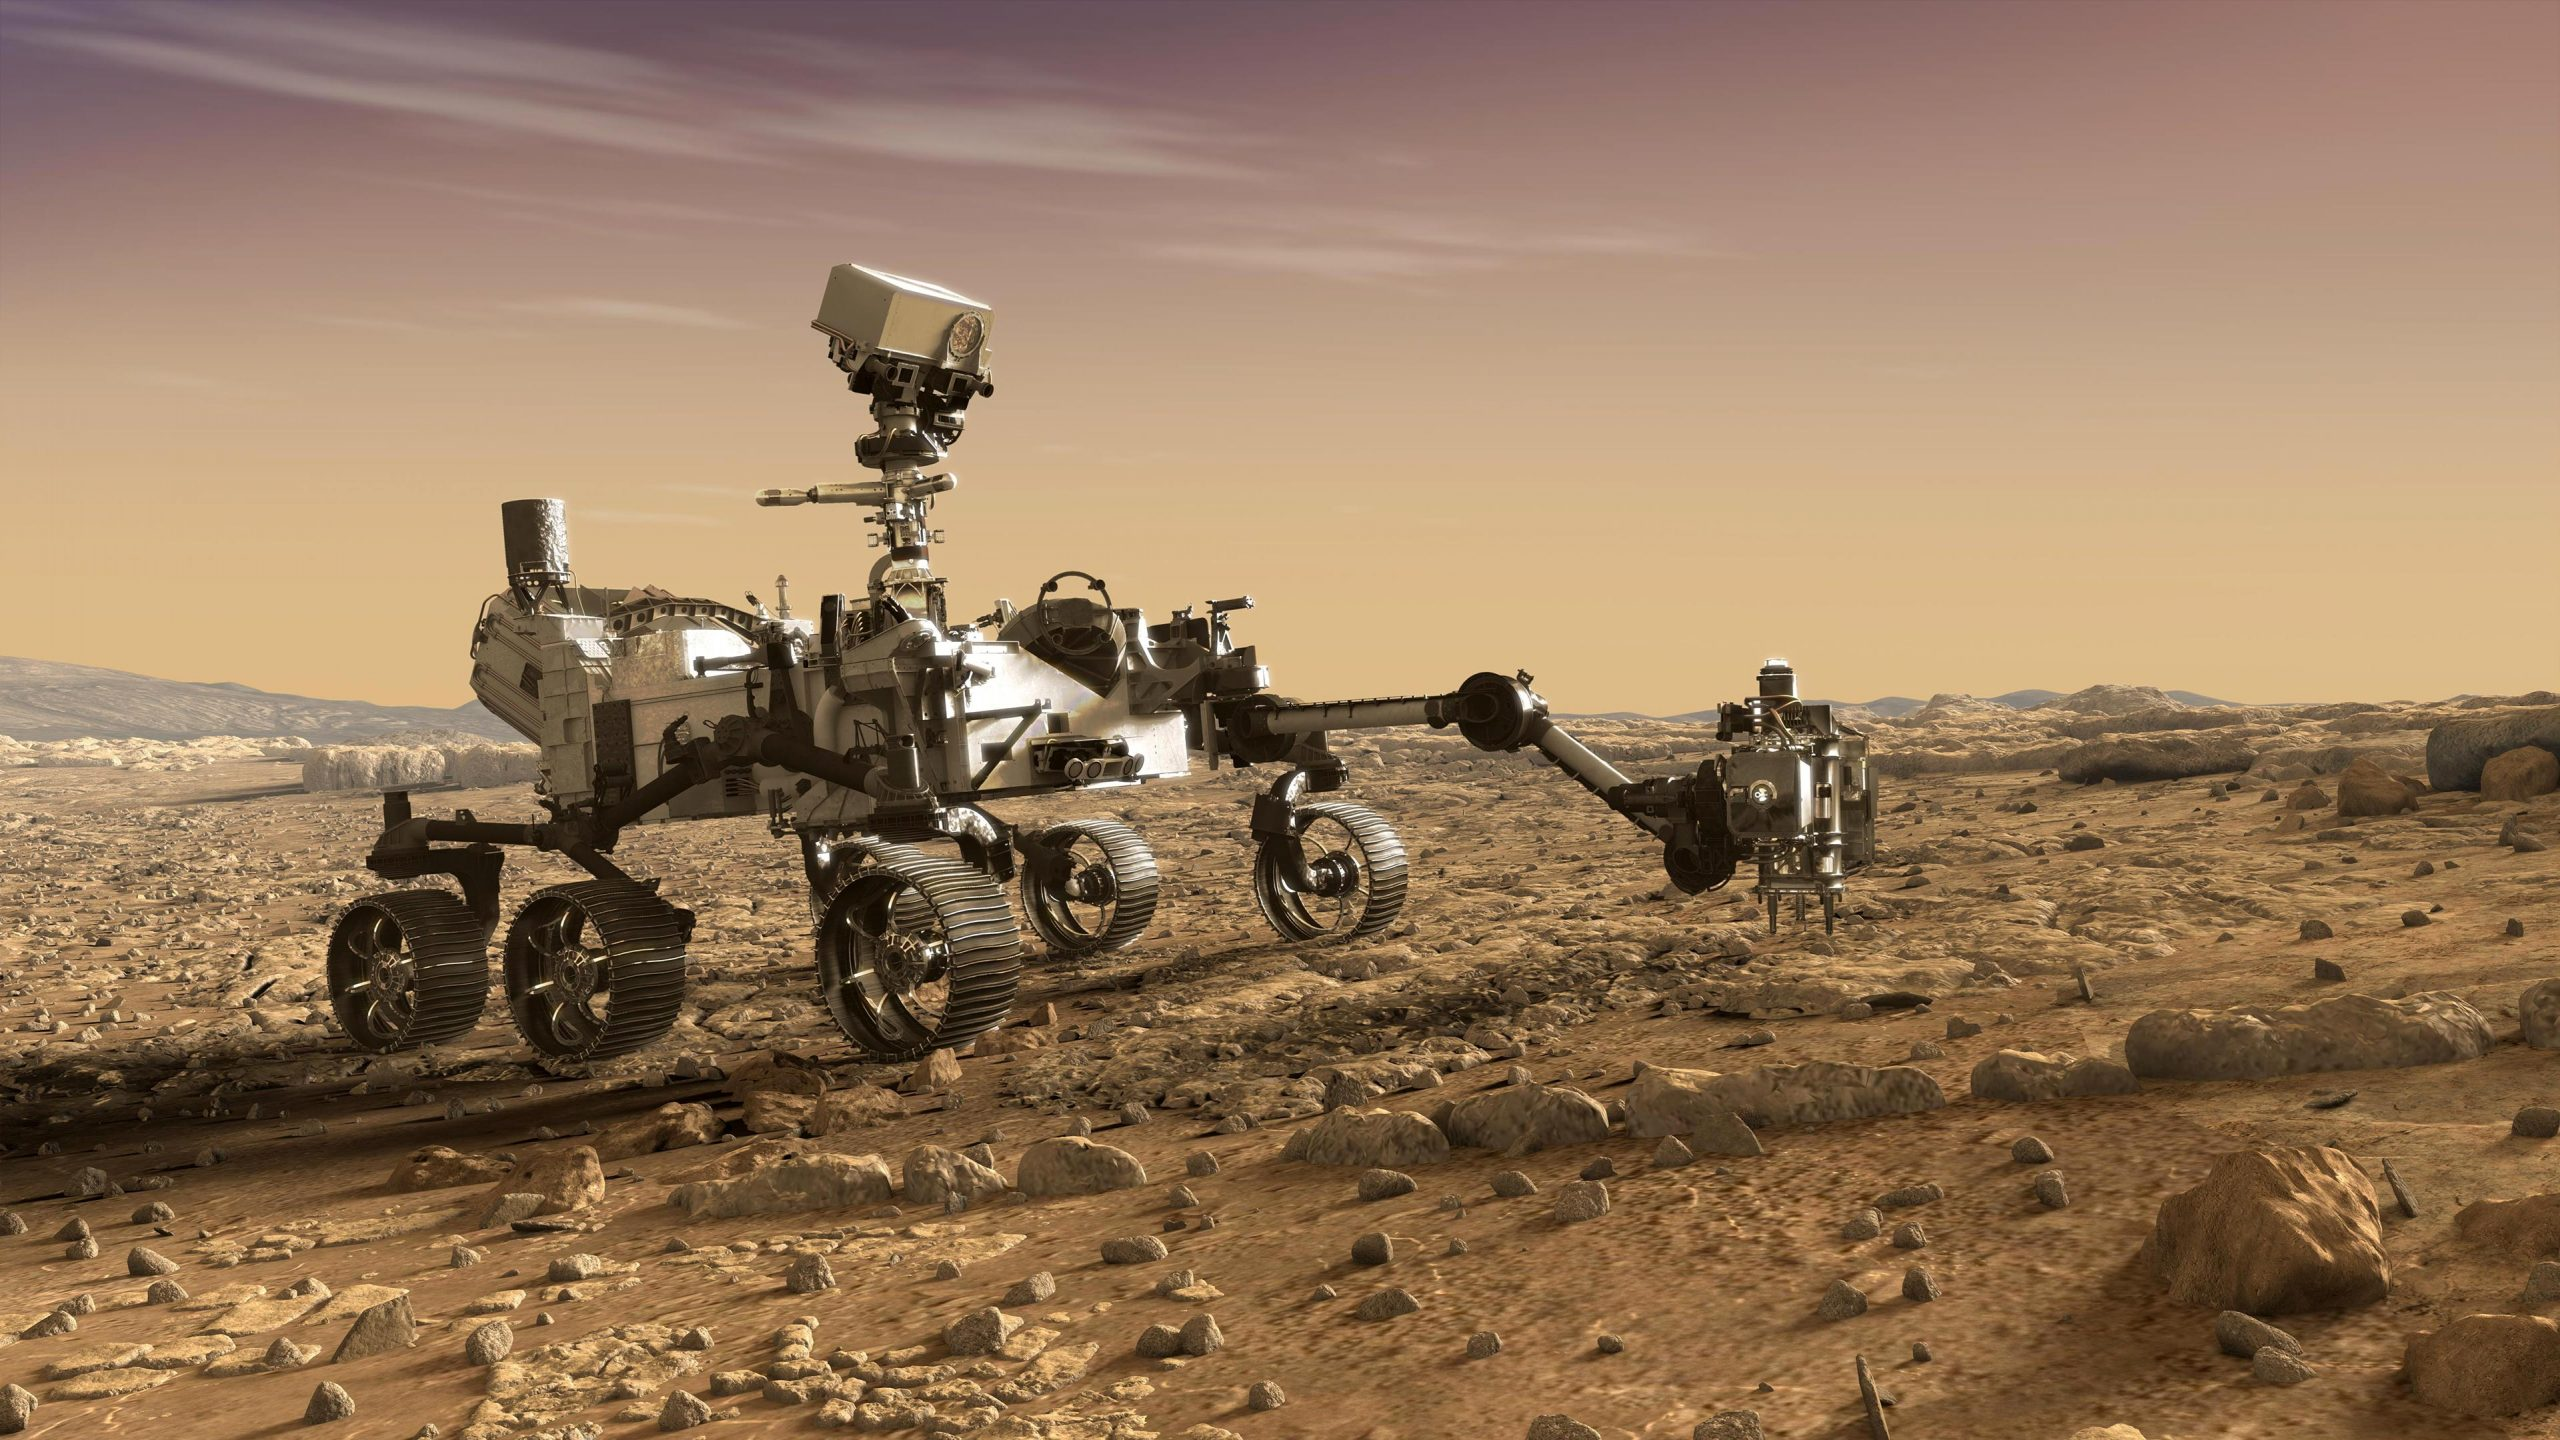 NASA to Brief Early Science Results From Perseverance Mars Rover - SciTechDaily